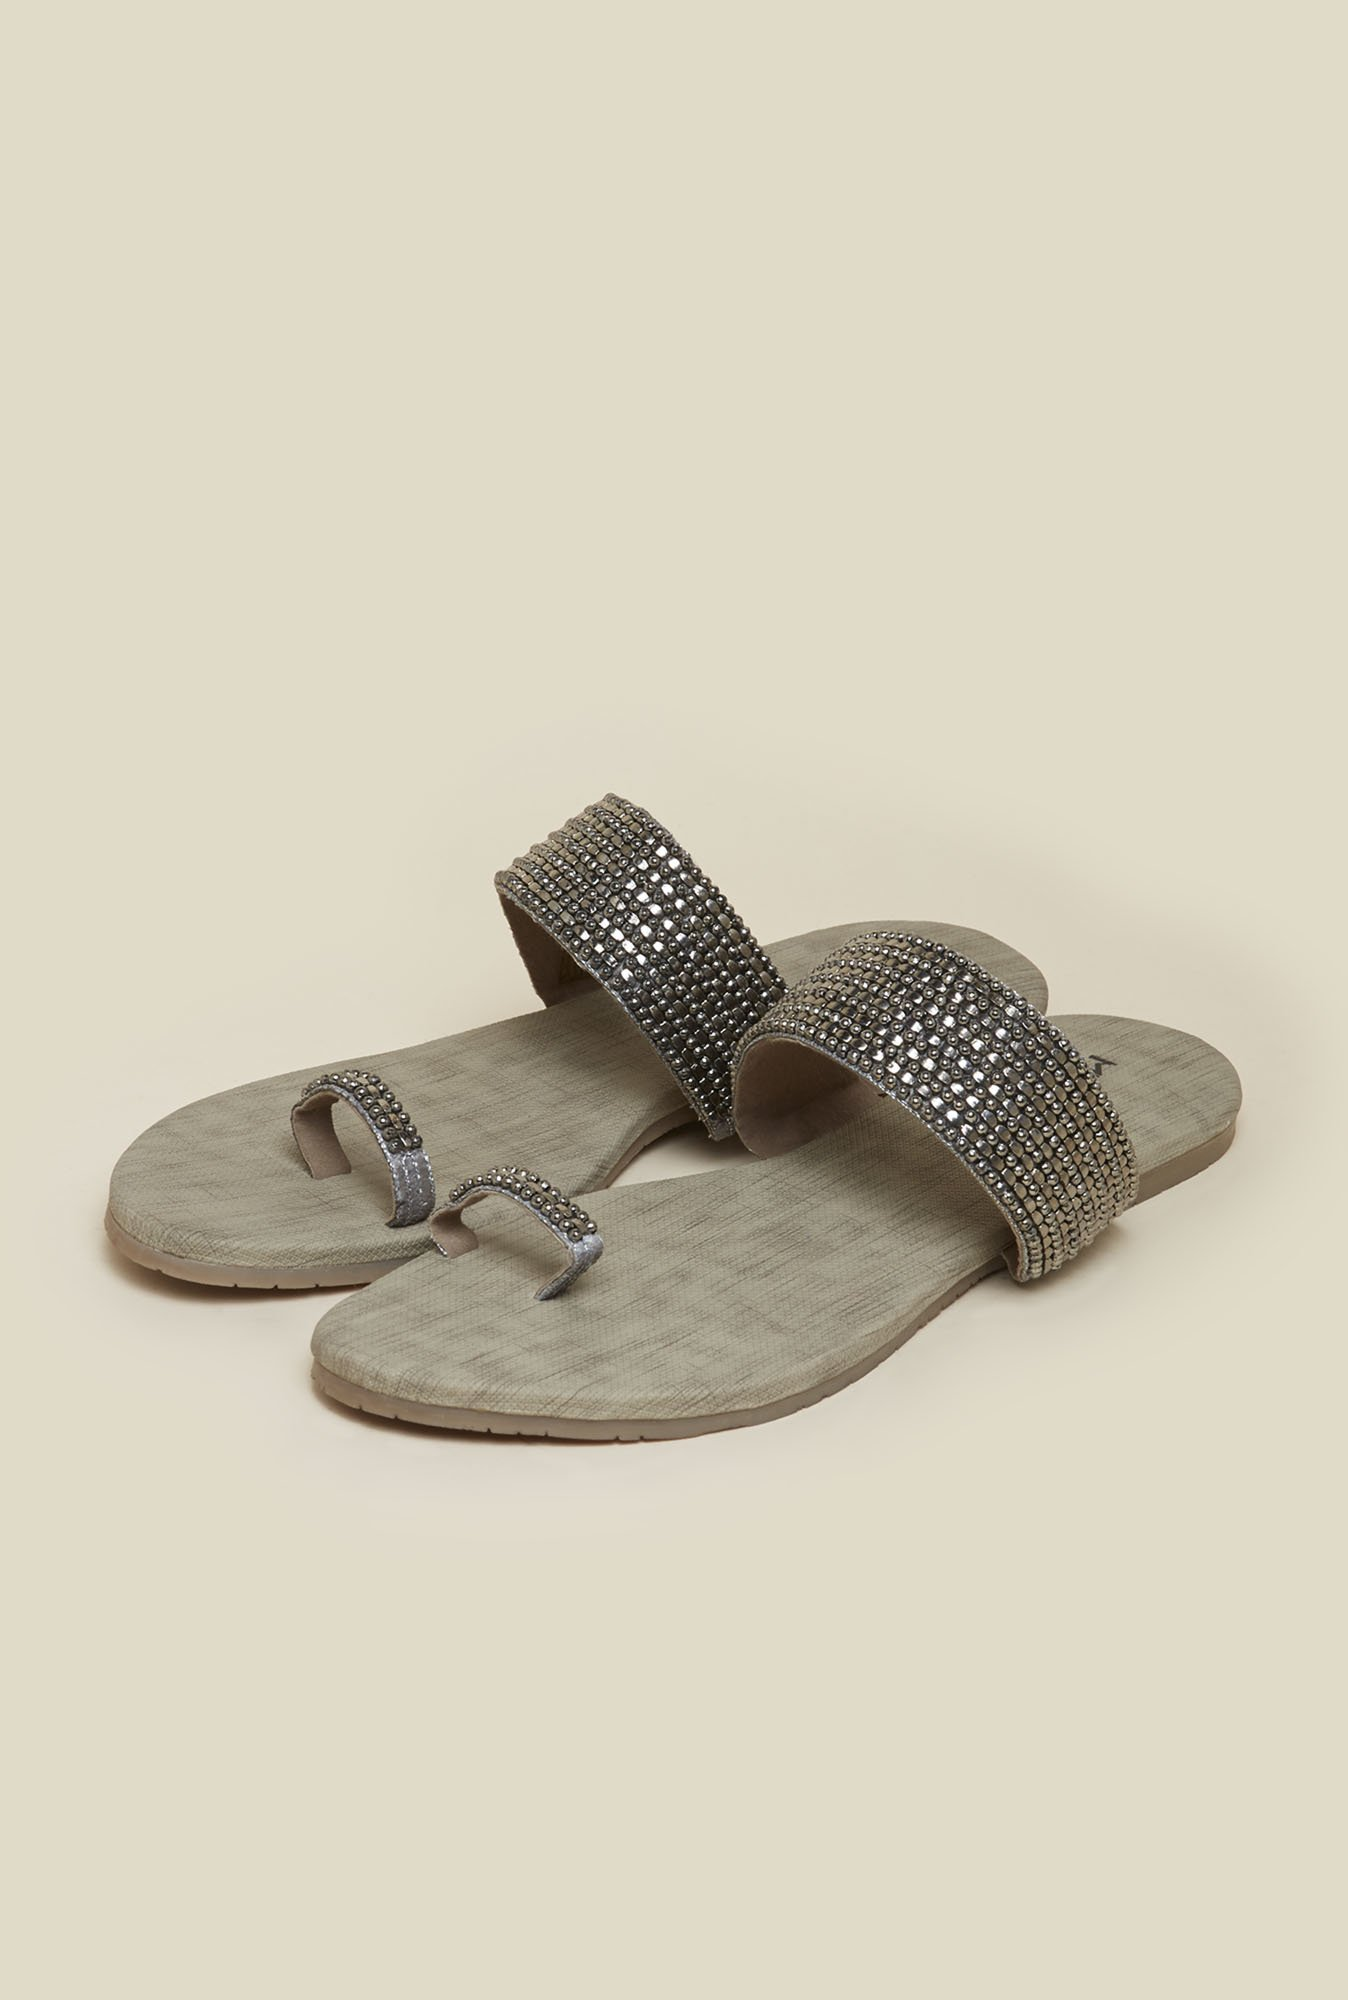 Metro Gun Metal Flat Ethnic Sandals